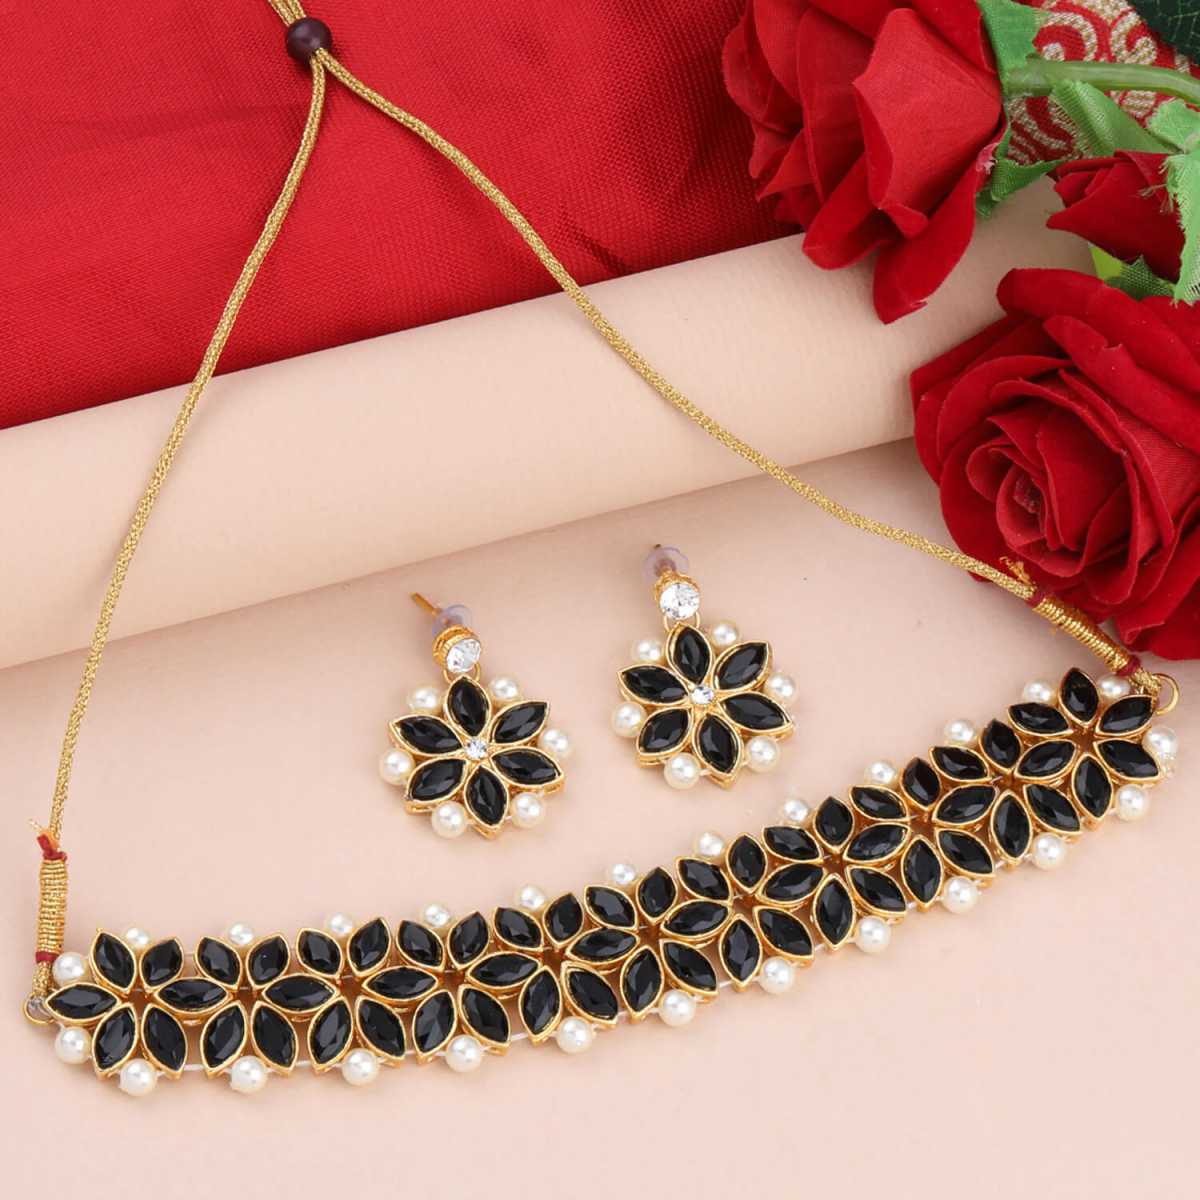 SILVER SHINE Gold Plated Exclusive Black Stone Choker Set For Girls And Women